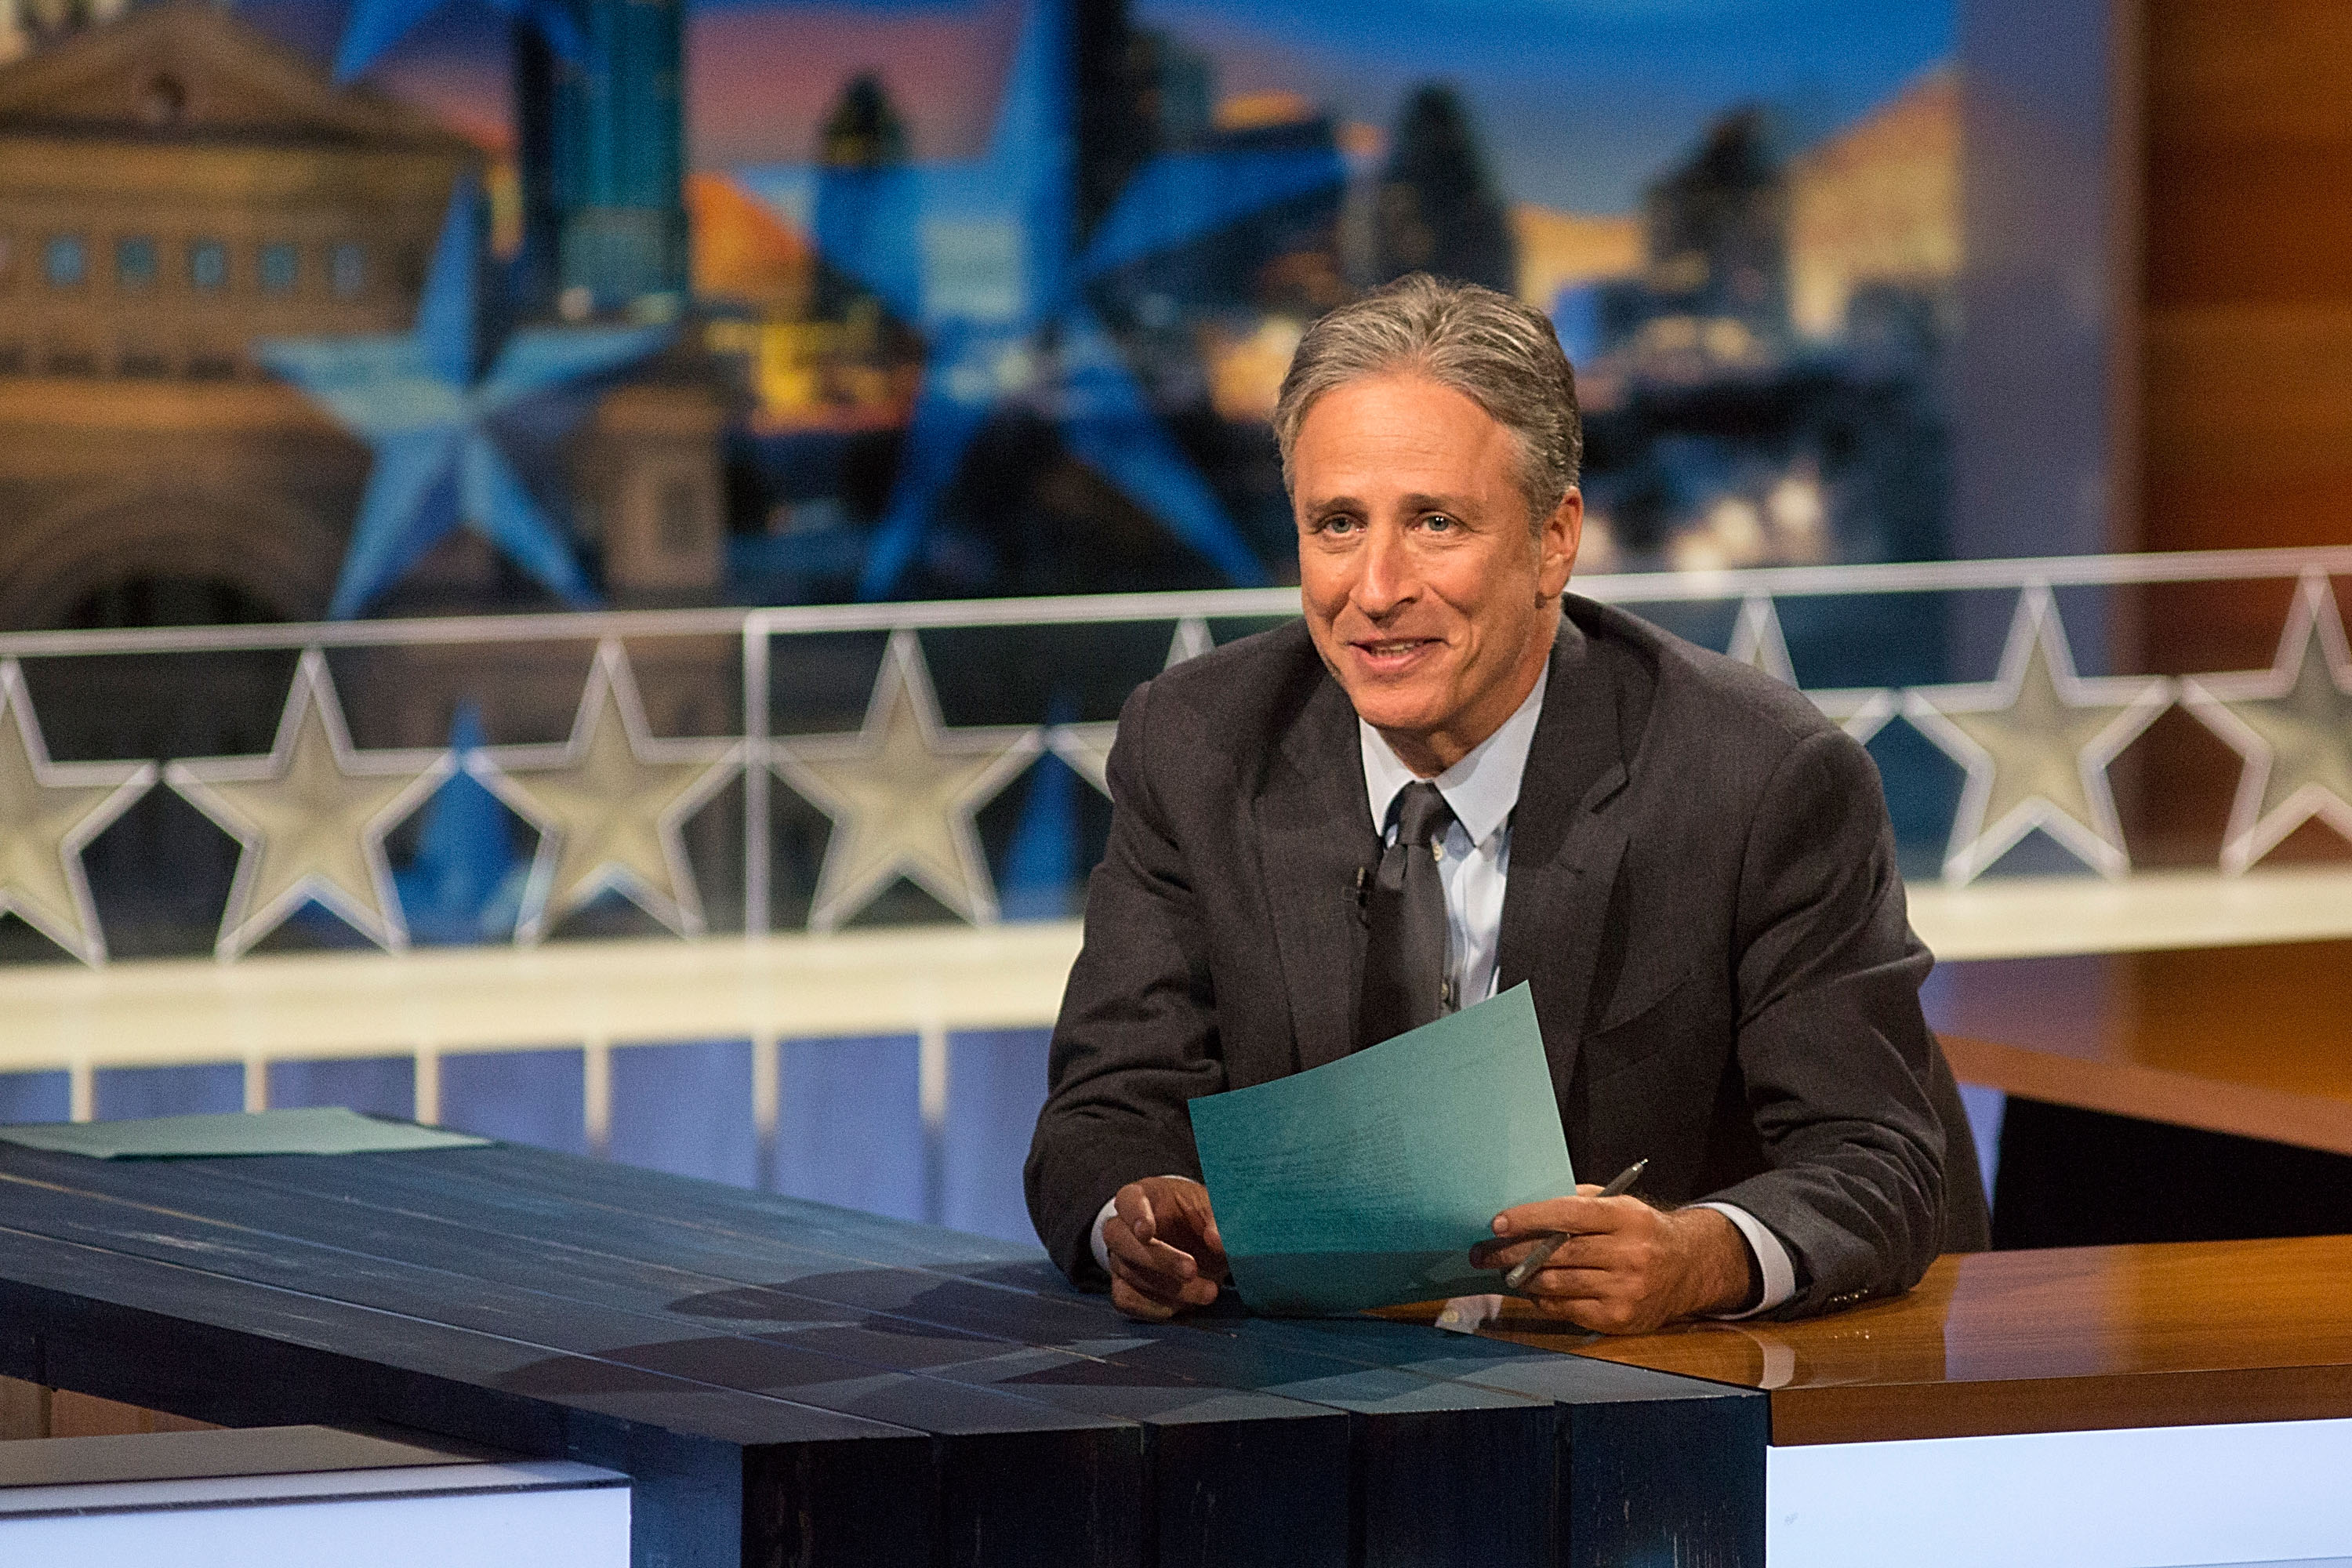 Host Jon Stewart at  The Daily Show with Jon Stewart  covers the Midterm elections in Austin with  Democalypse 2014: South By South Mess  at ZACH Theatre on October 28, 2014 in Austin, Texas.  (Photo by Rick Kern/Getty Images for Comedy Central)